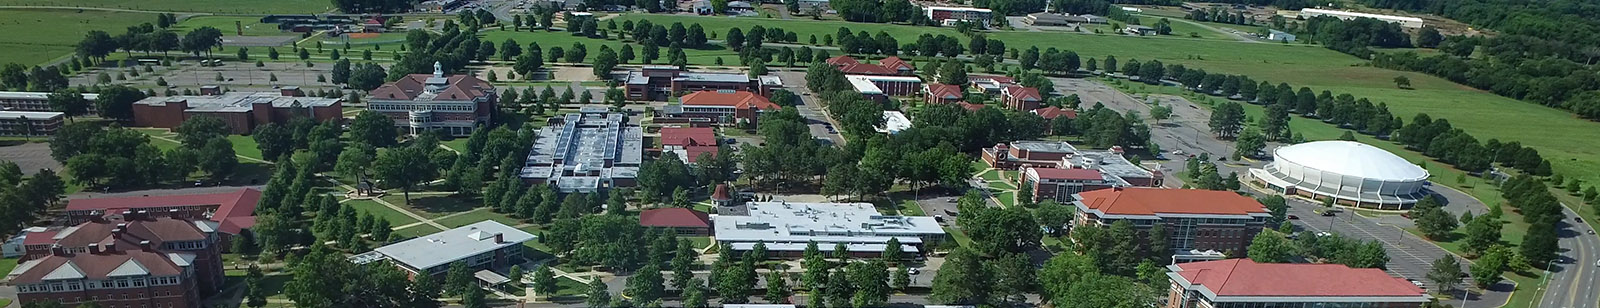 ATU Russellville campus as seen from the sky above the River Valley